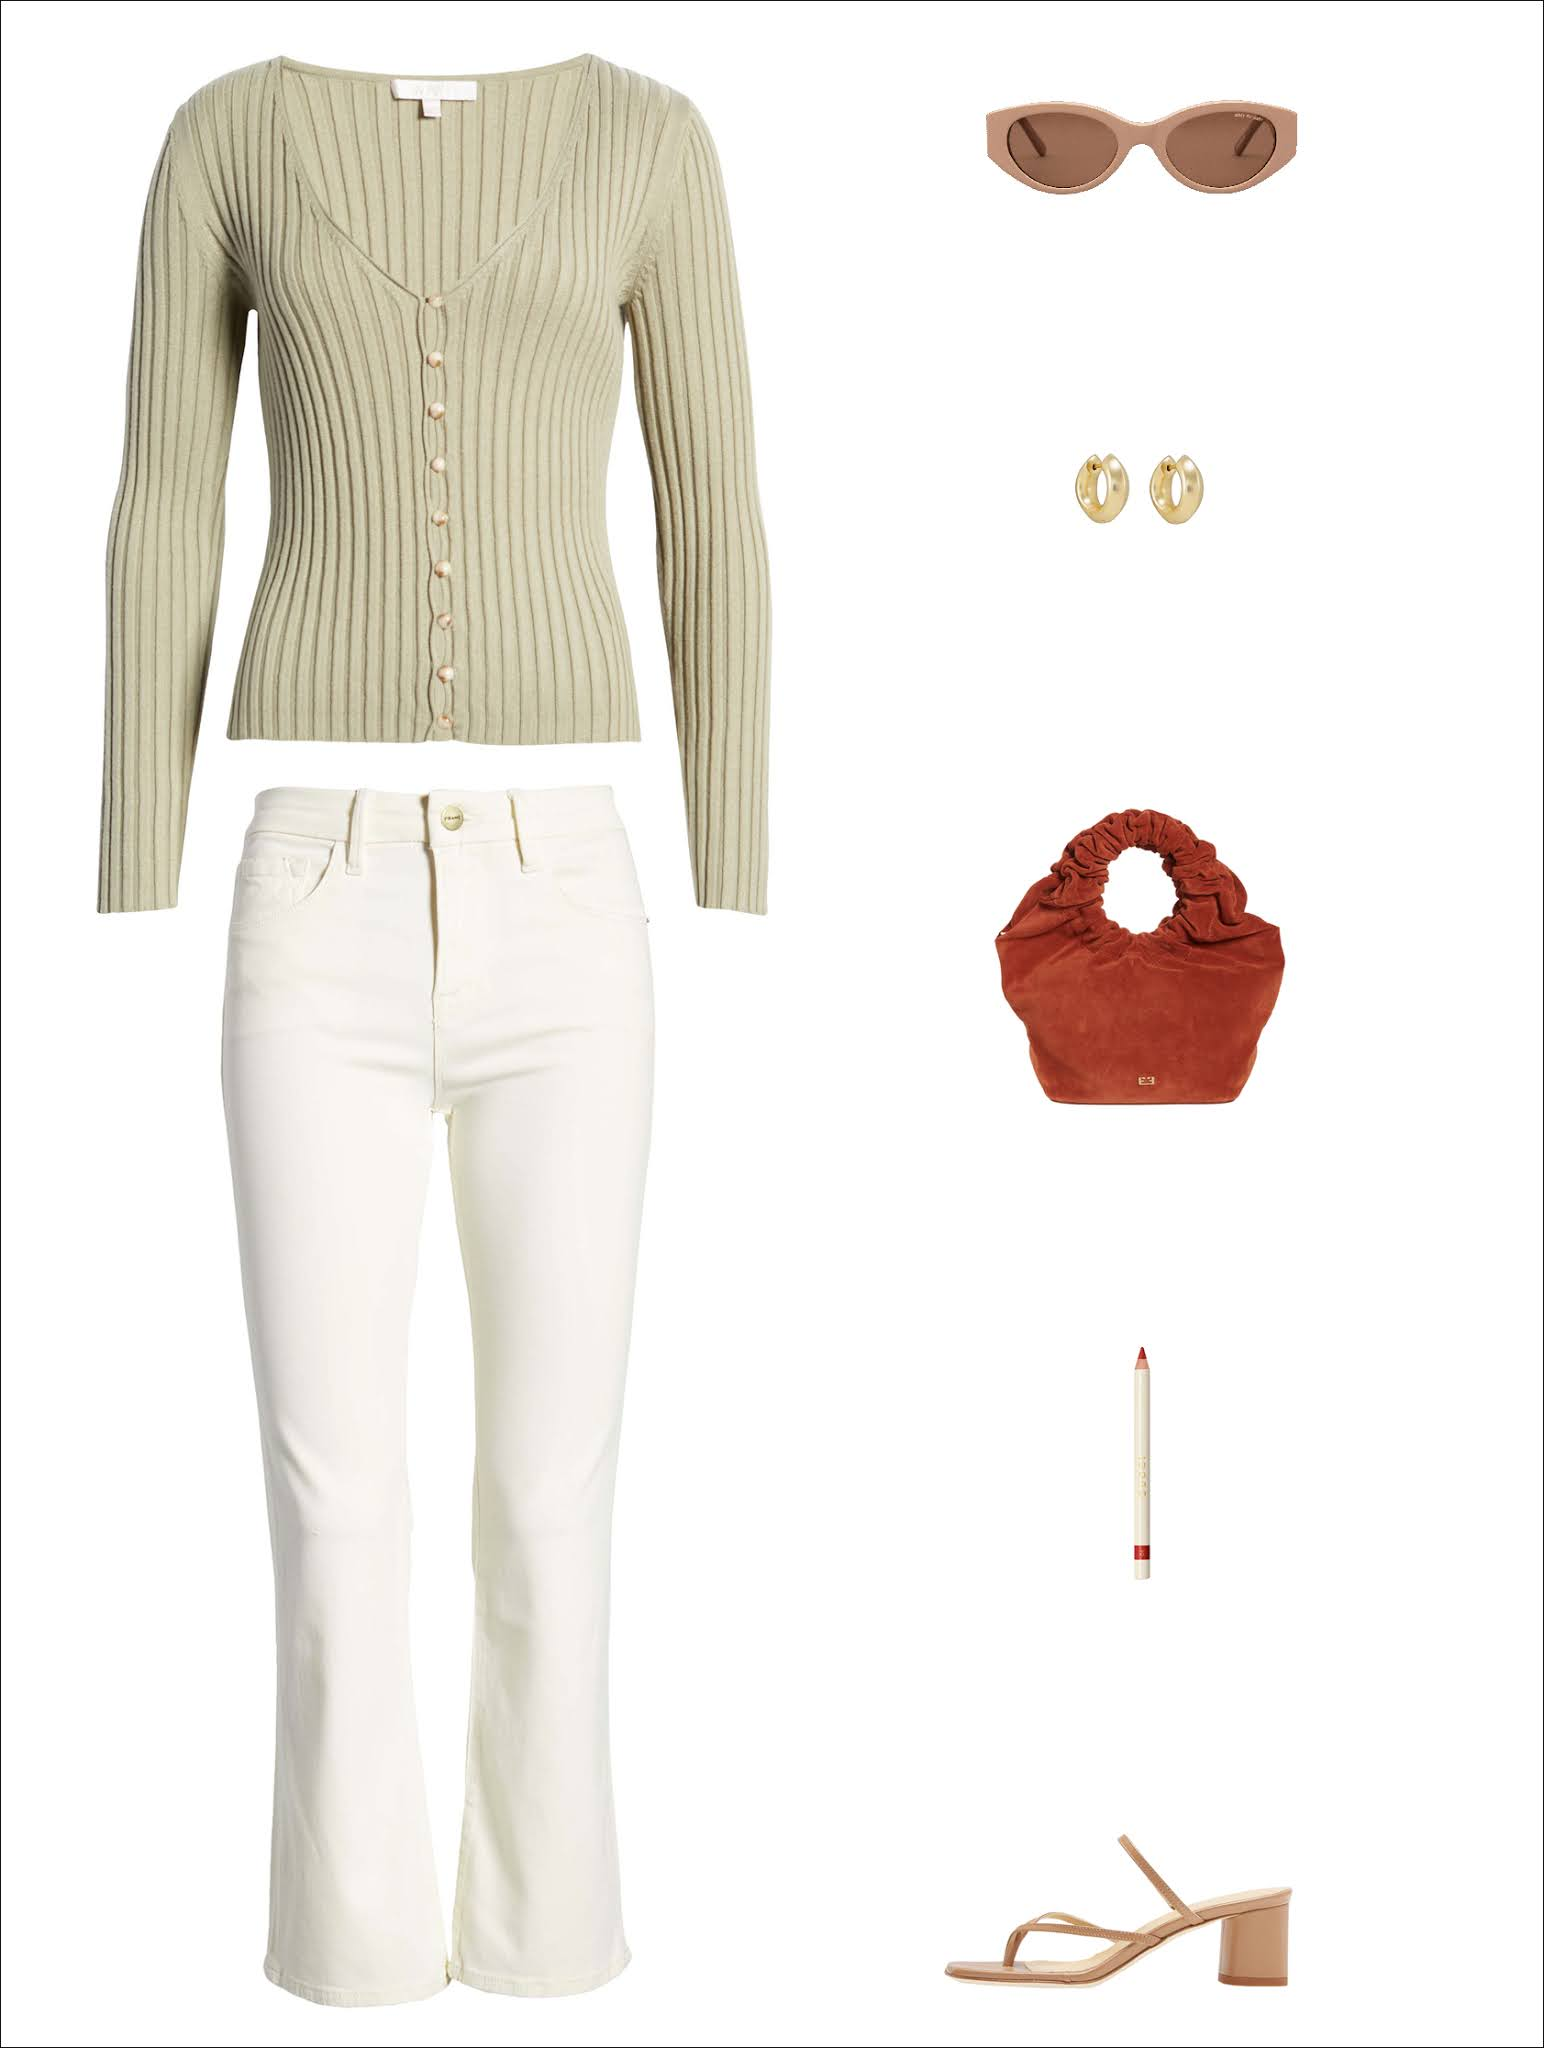 Polished Yet Casual Spring Outfit Idea — muted green cardigan sweater, neutral sunglasses, chunky hoop earrings, a bold red mini bag, cropped white jeans, and beige sandals